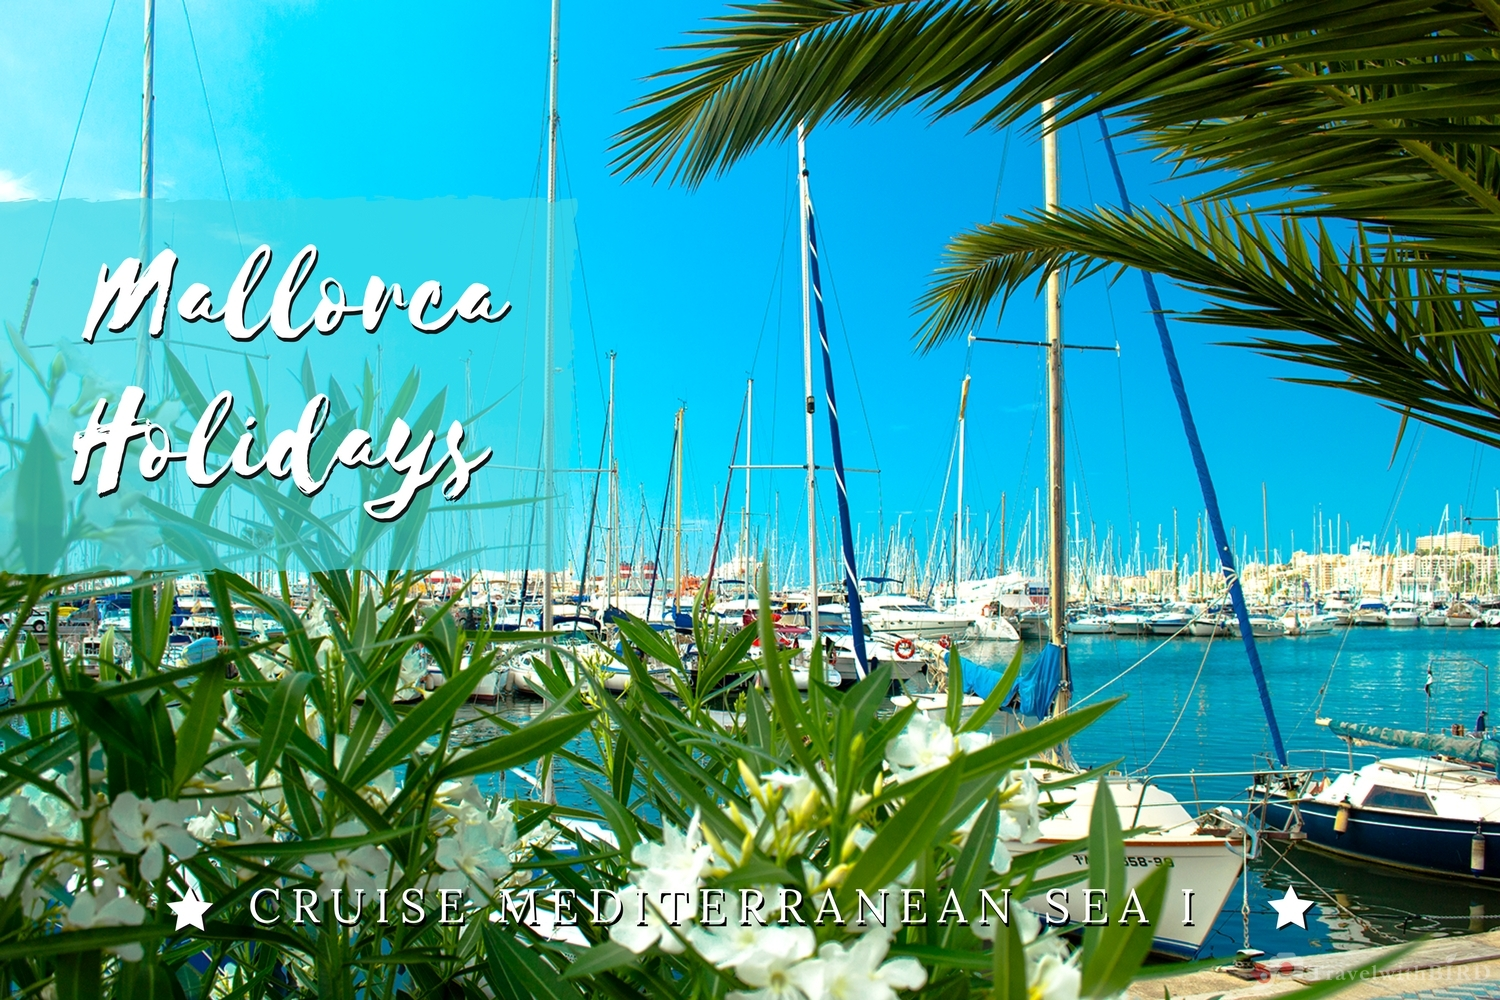 Cruise mediterranean sea (1): Mallorca holiday